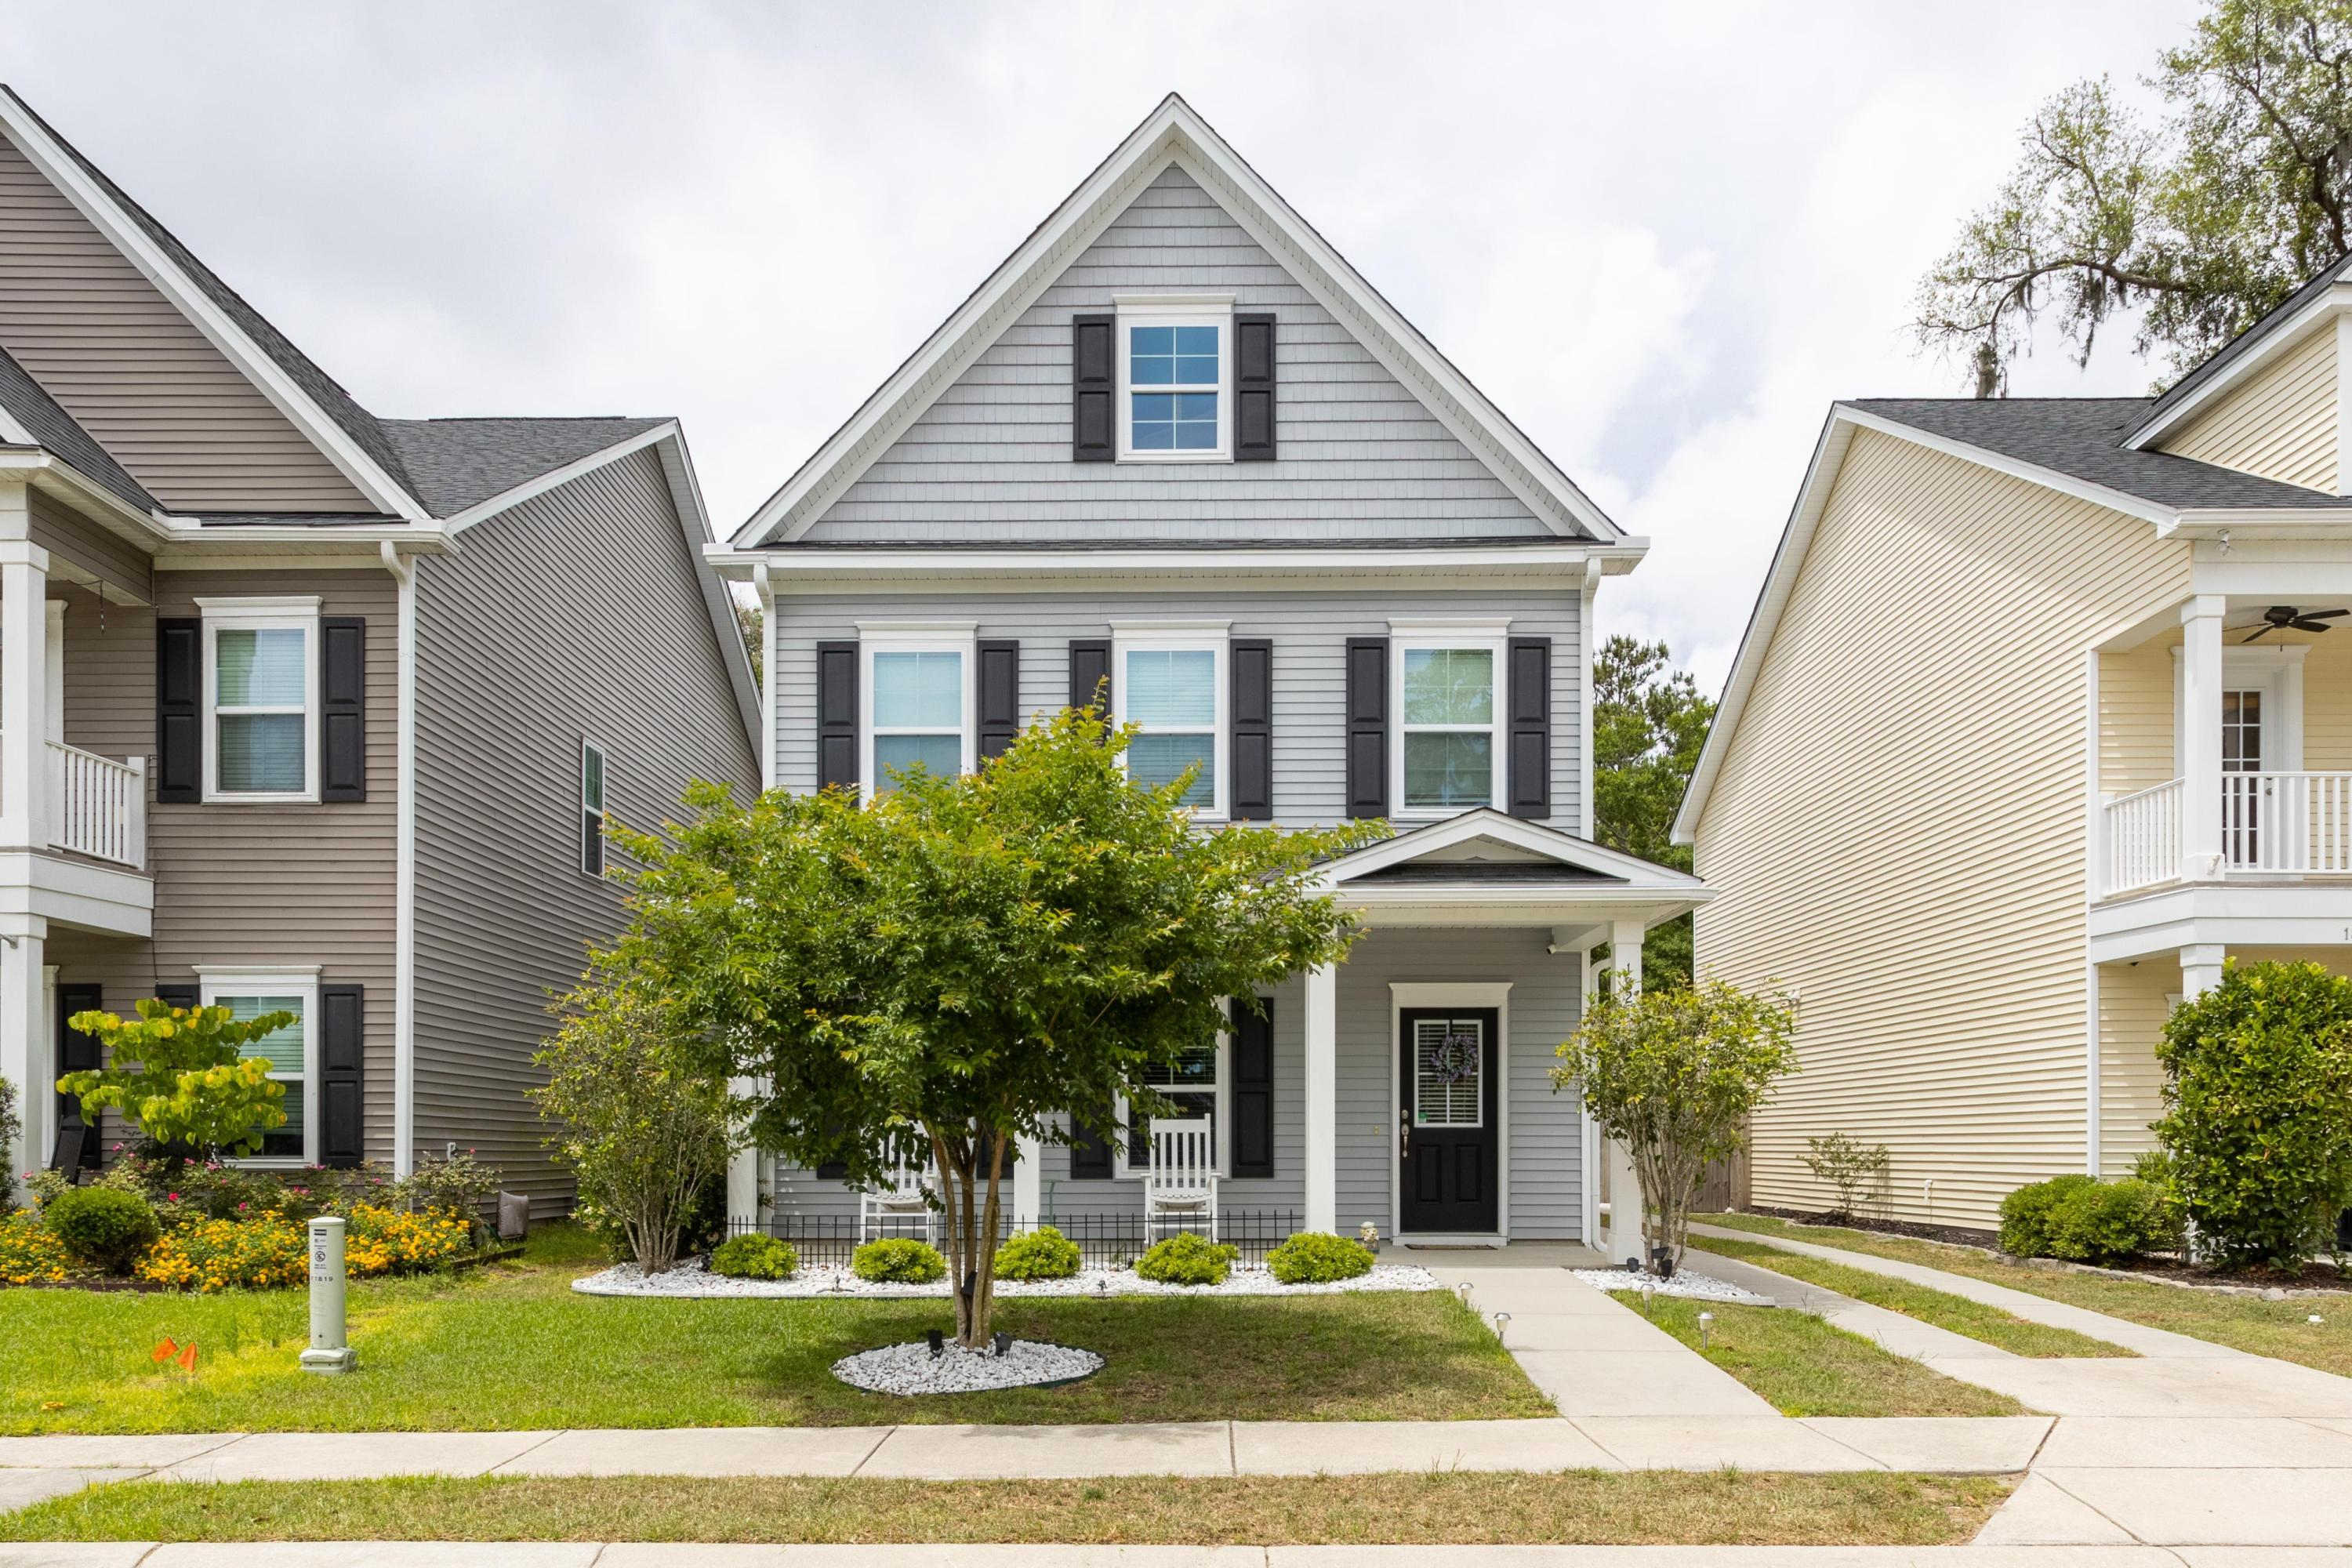 The Cottages at Johns Island Homes For Sale - 1821 Towne, Johns Island, SC - 21